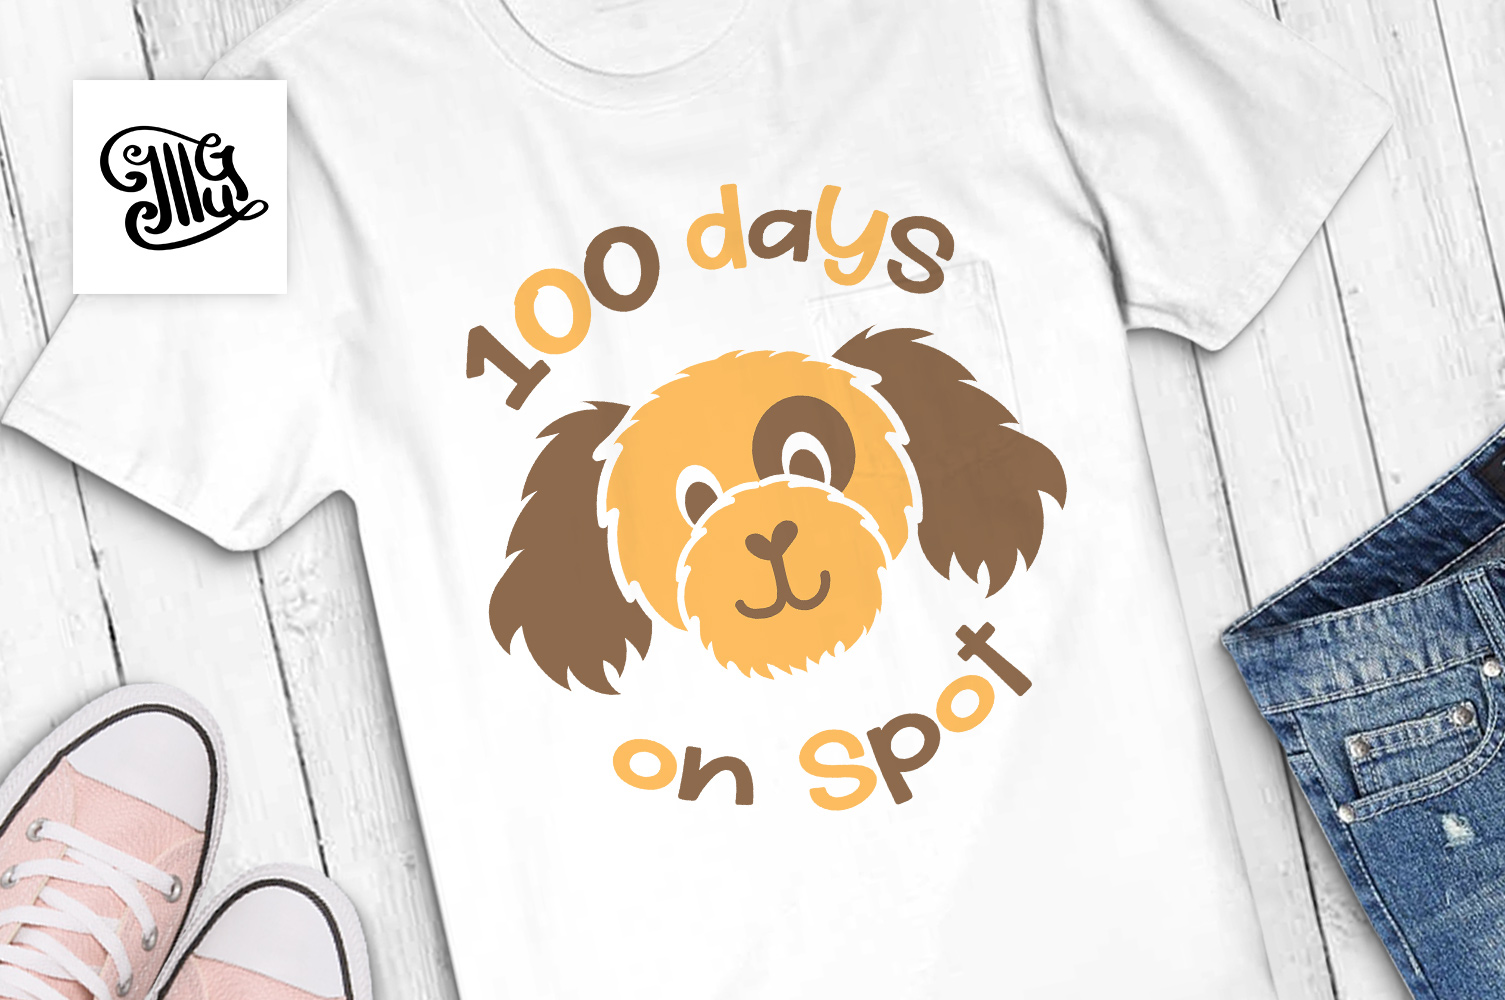 100 days of school for boy svg with dog clipart example image 1